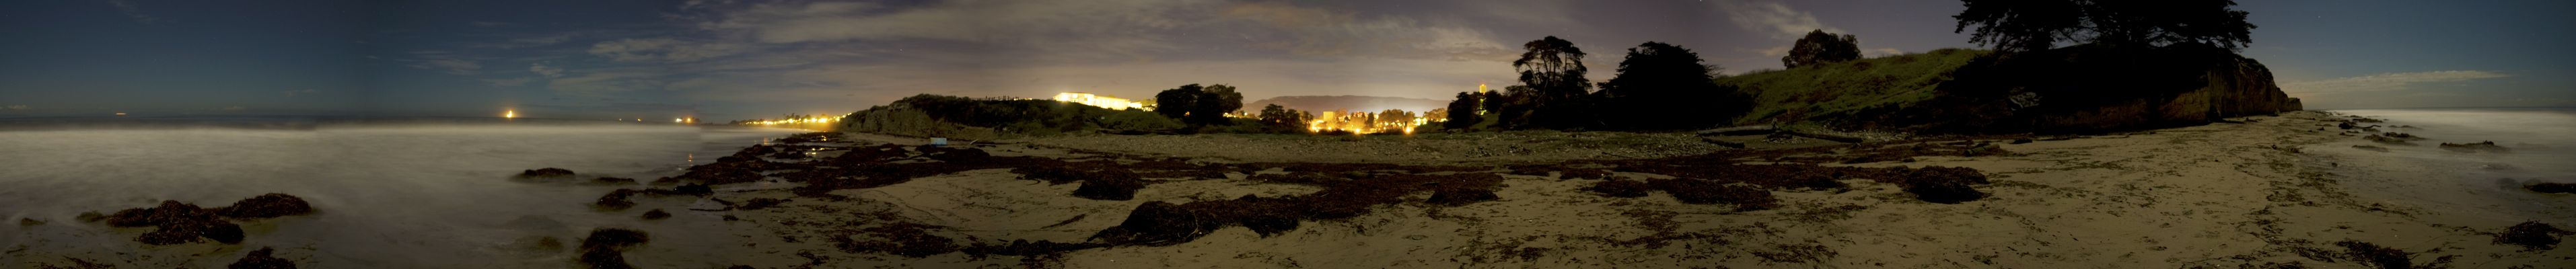 The UCSB beach covered in moonlight.